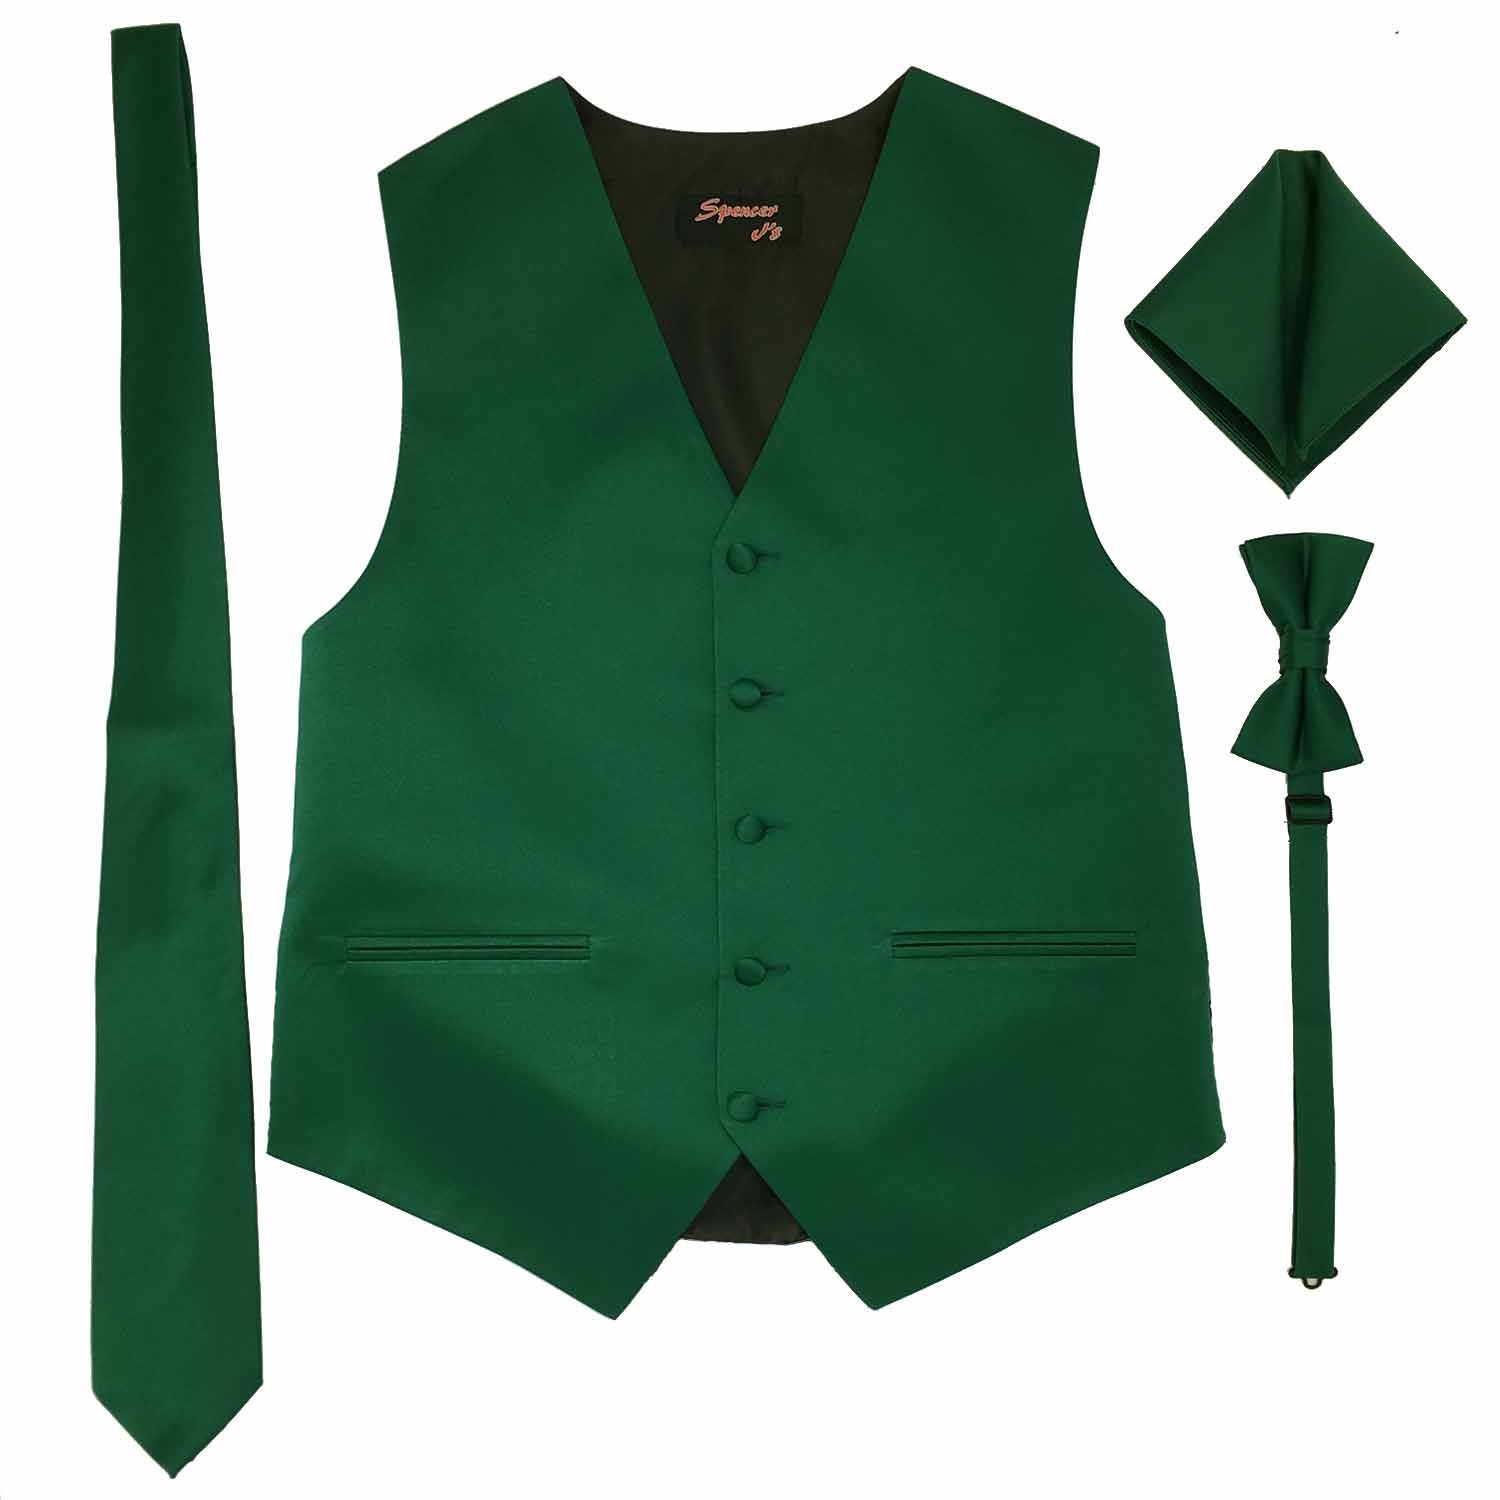 Spencer J's Men's Formal Tuxedo Suit Vest Tie Bowtie and Pocket Square 4 Peice Set Verity of Colors (S (Coat Size 35-37), Forest/Emrald)